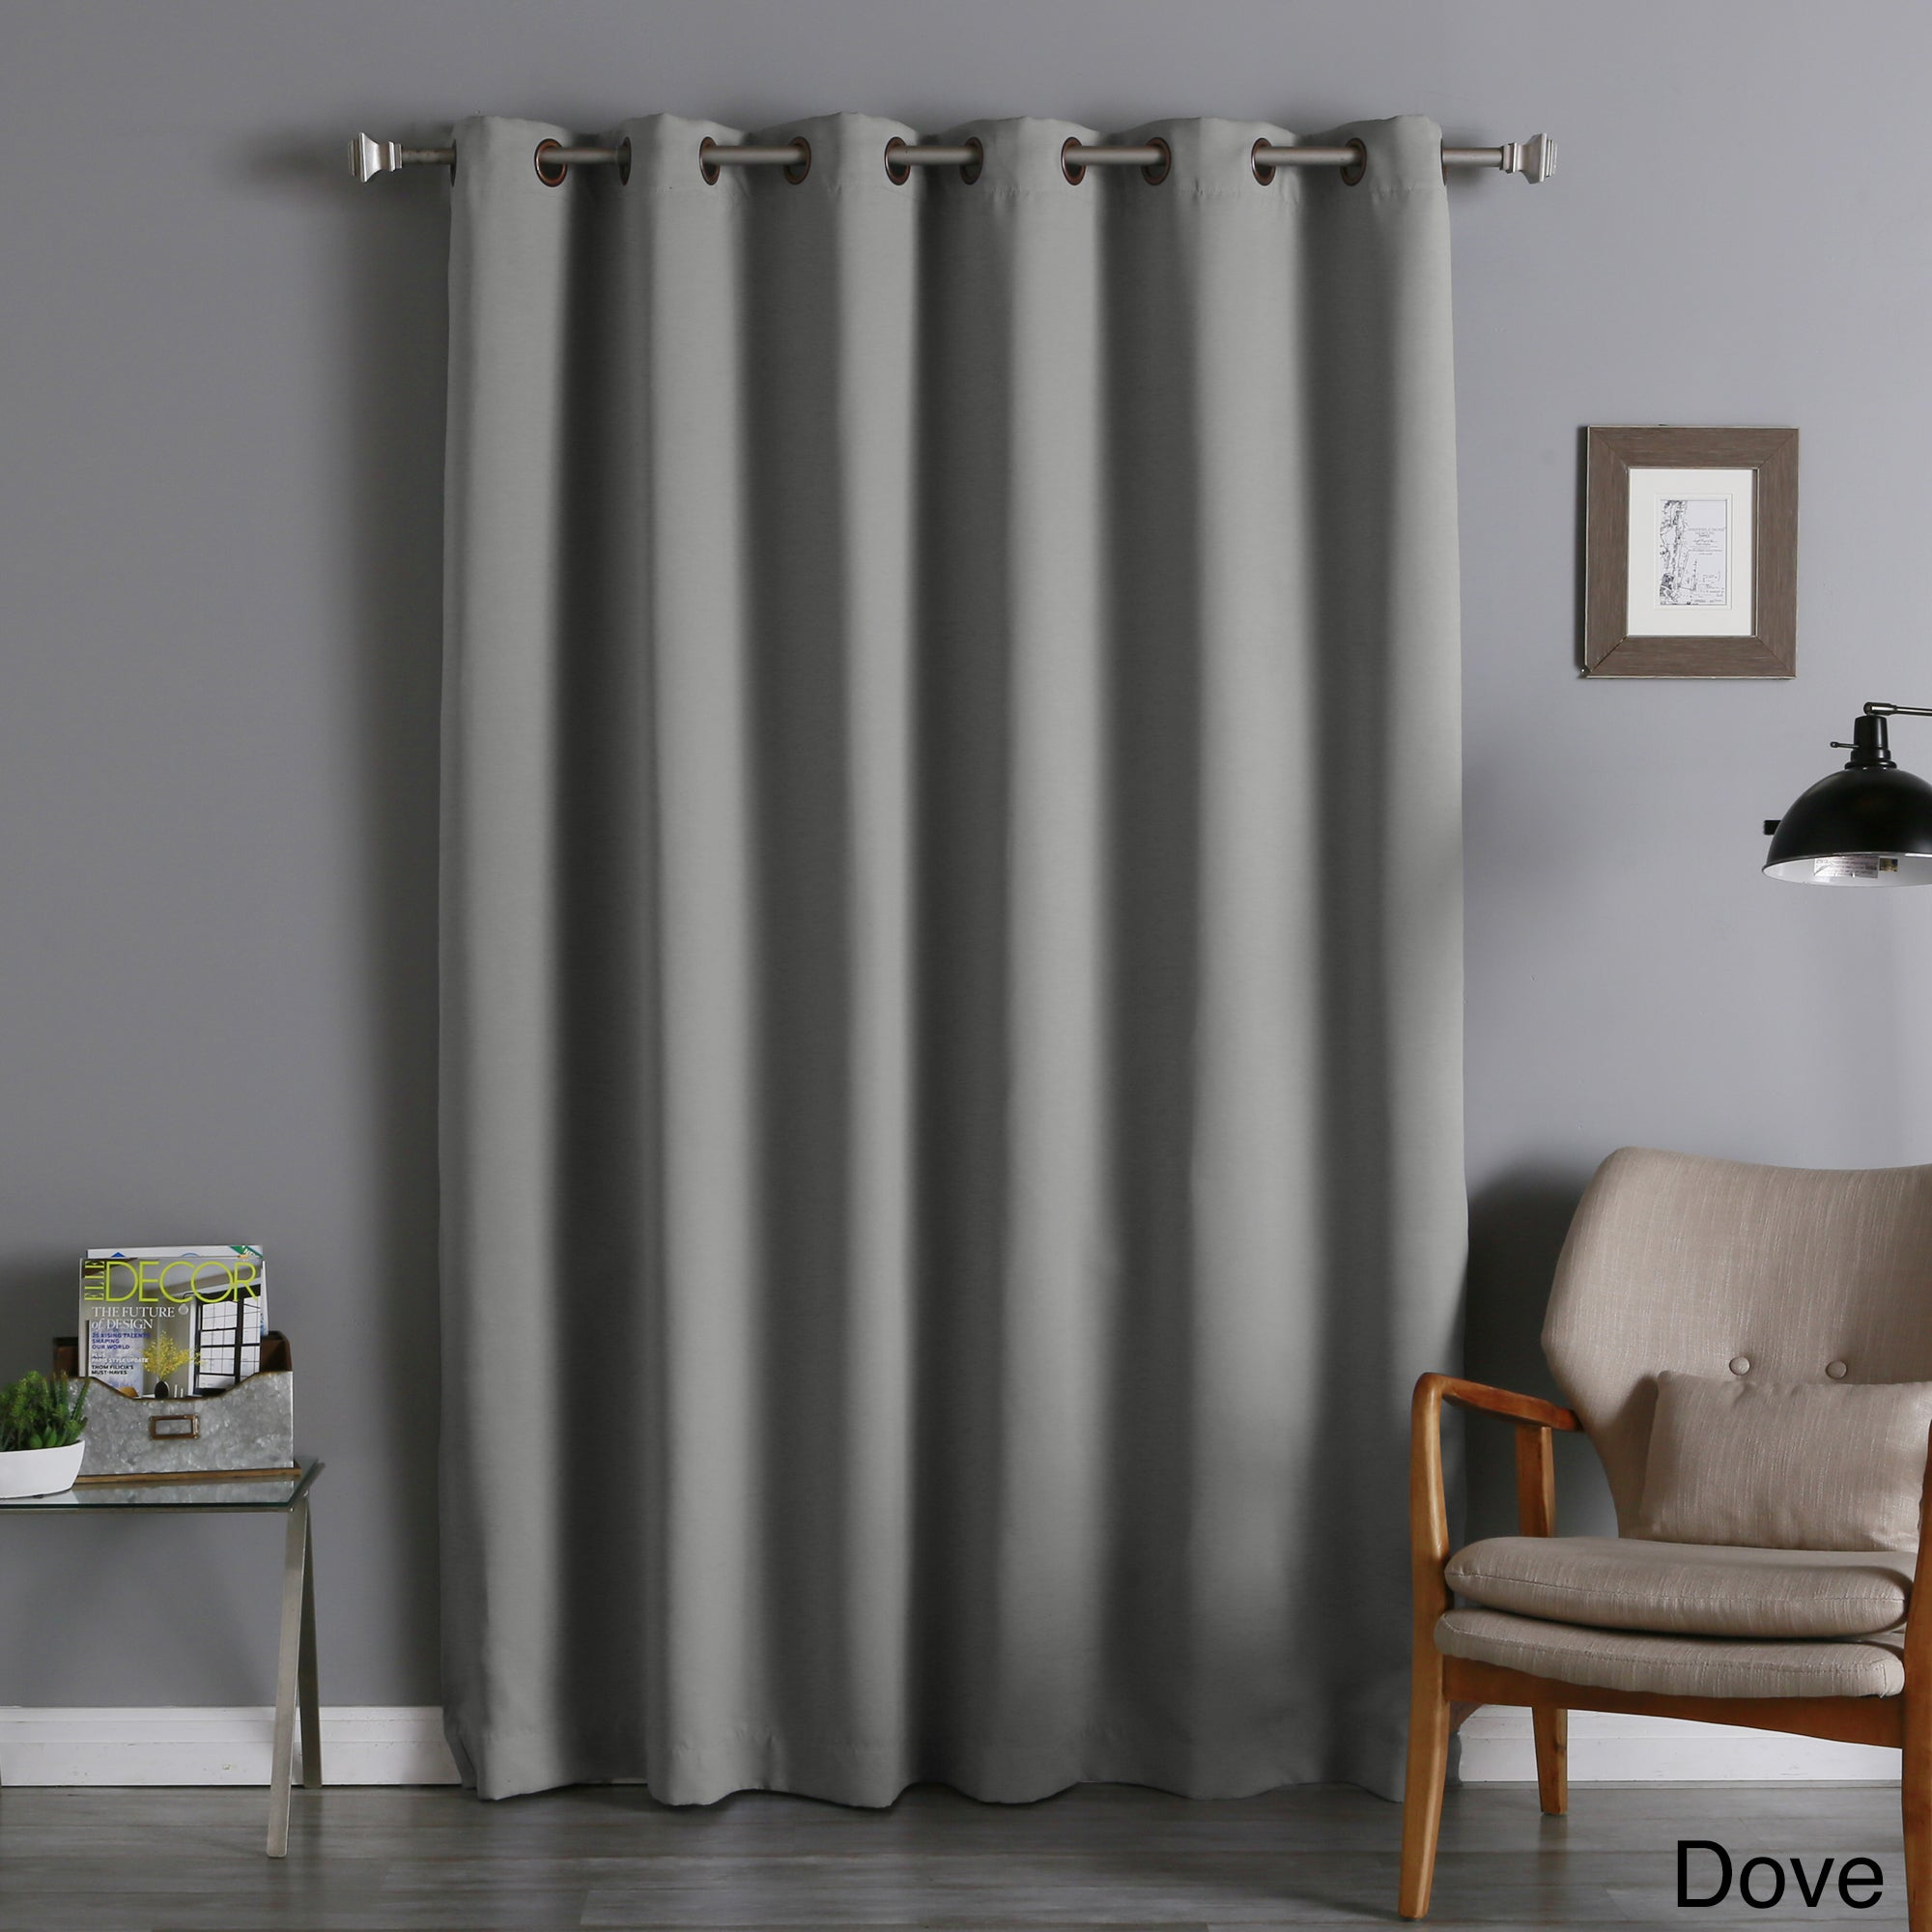 urijk panel curtains width tulle getsubject aeproduct bedrrom flat product purple living sheer room curtain